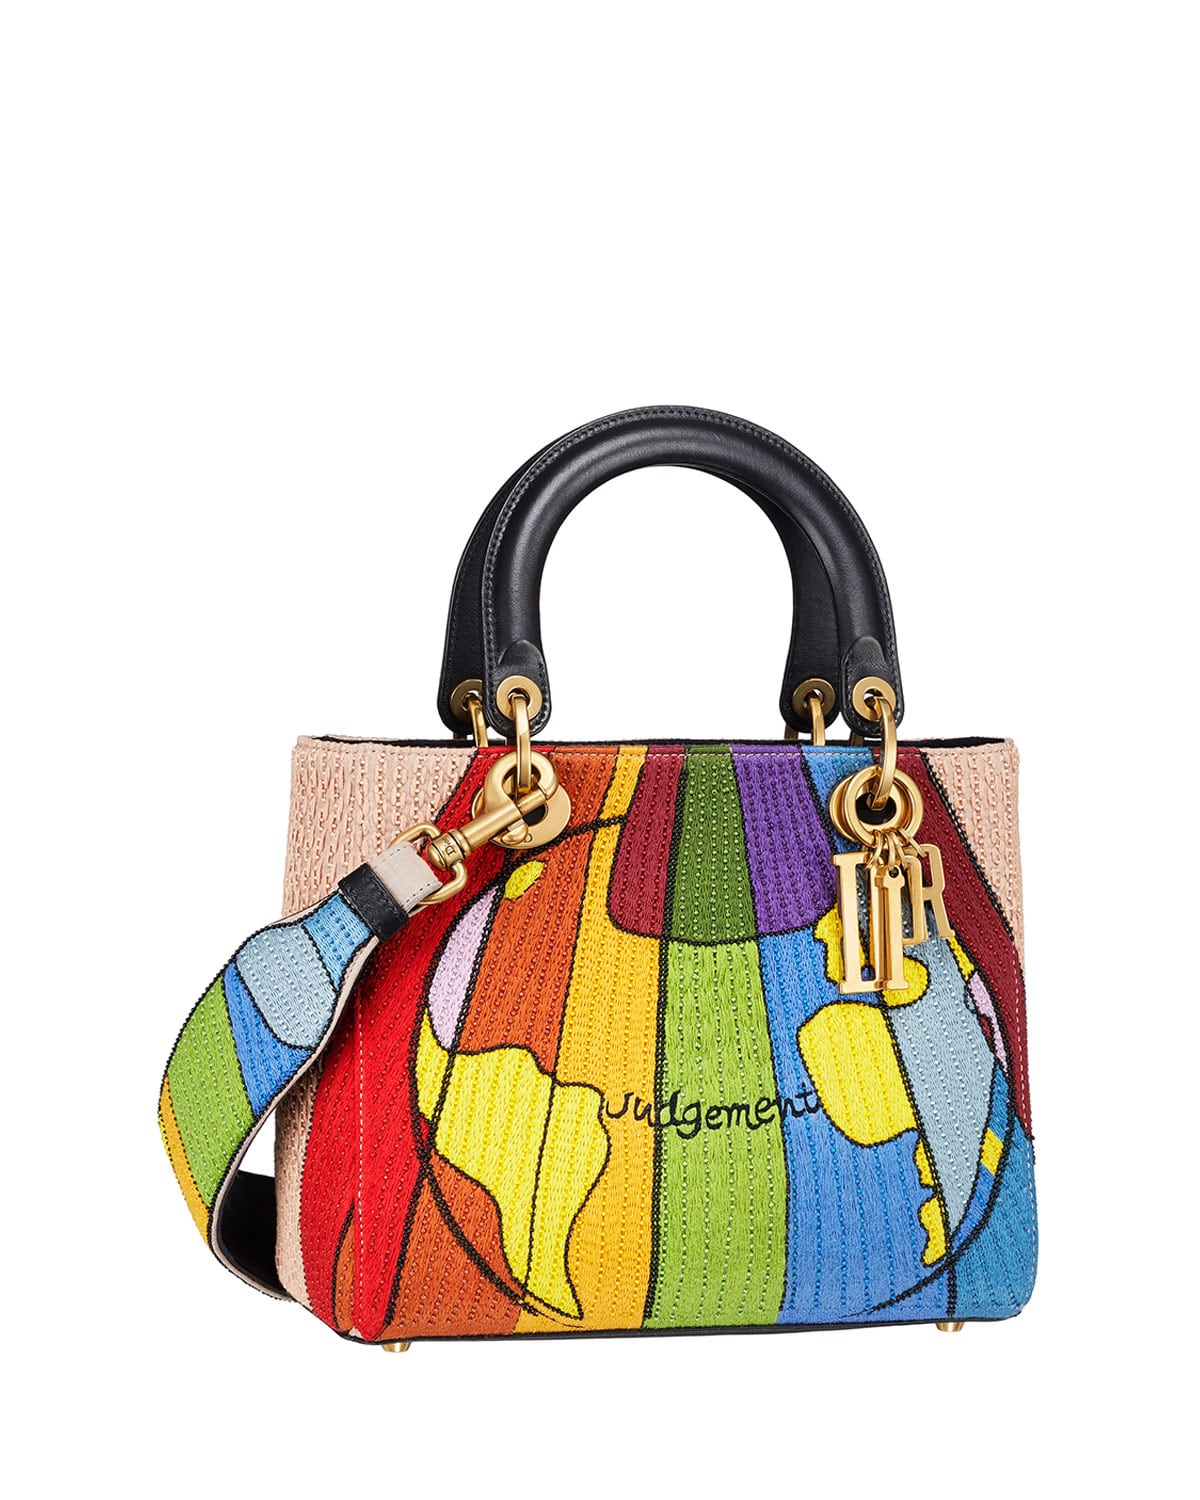 Dior Multicolor Judgement Embroidered Lady Bag